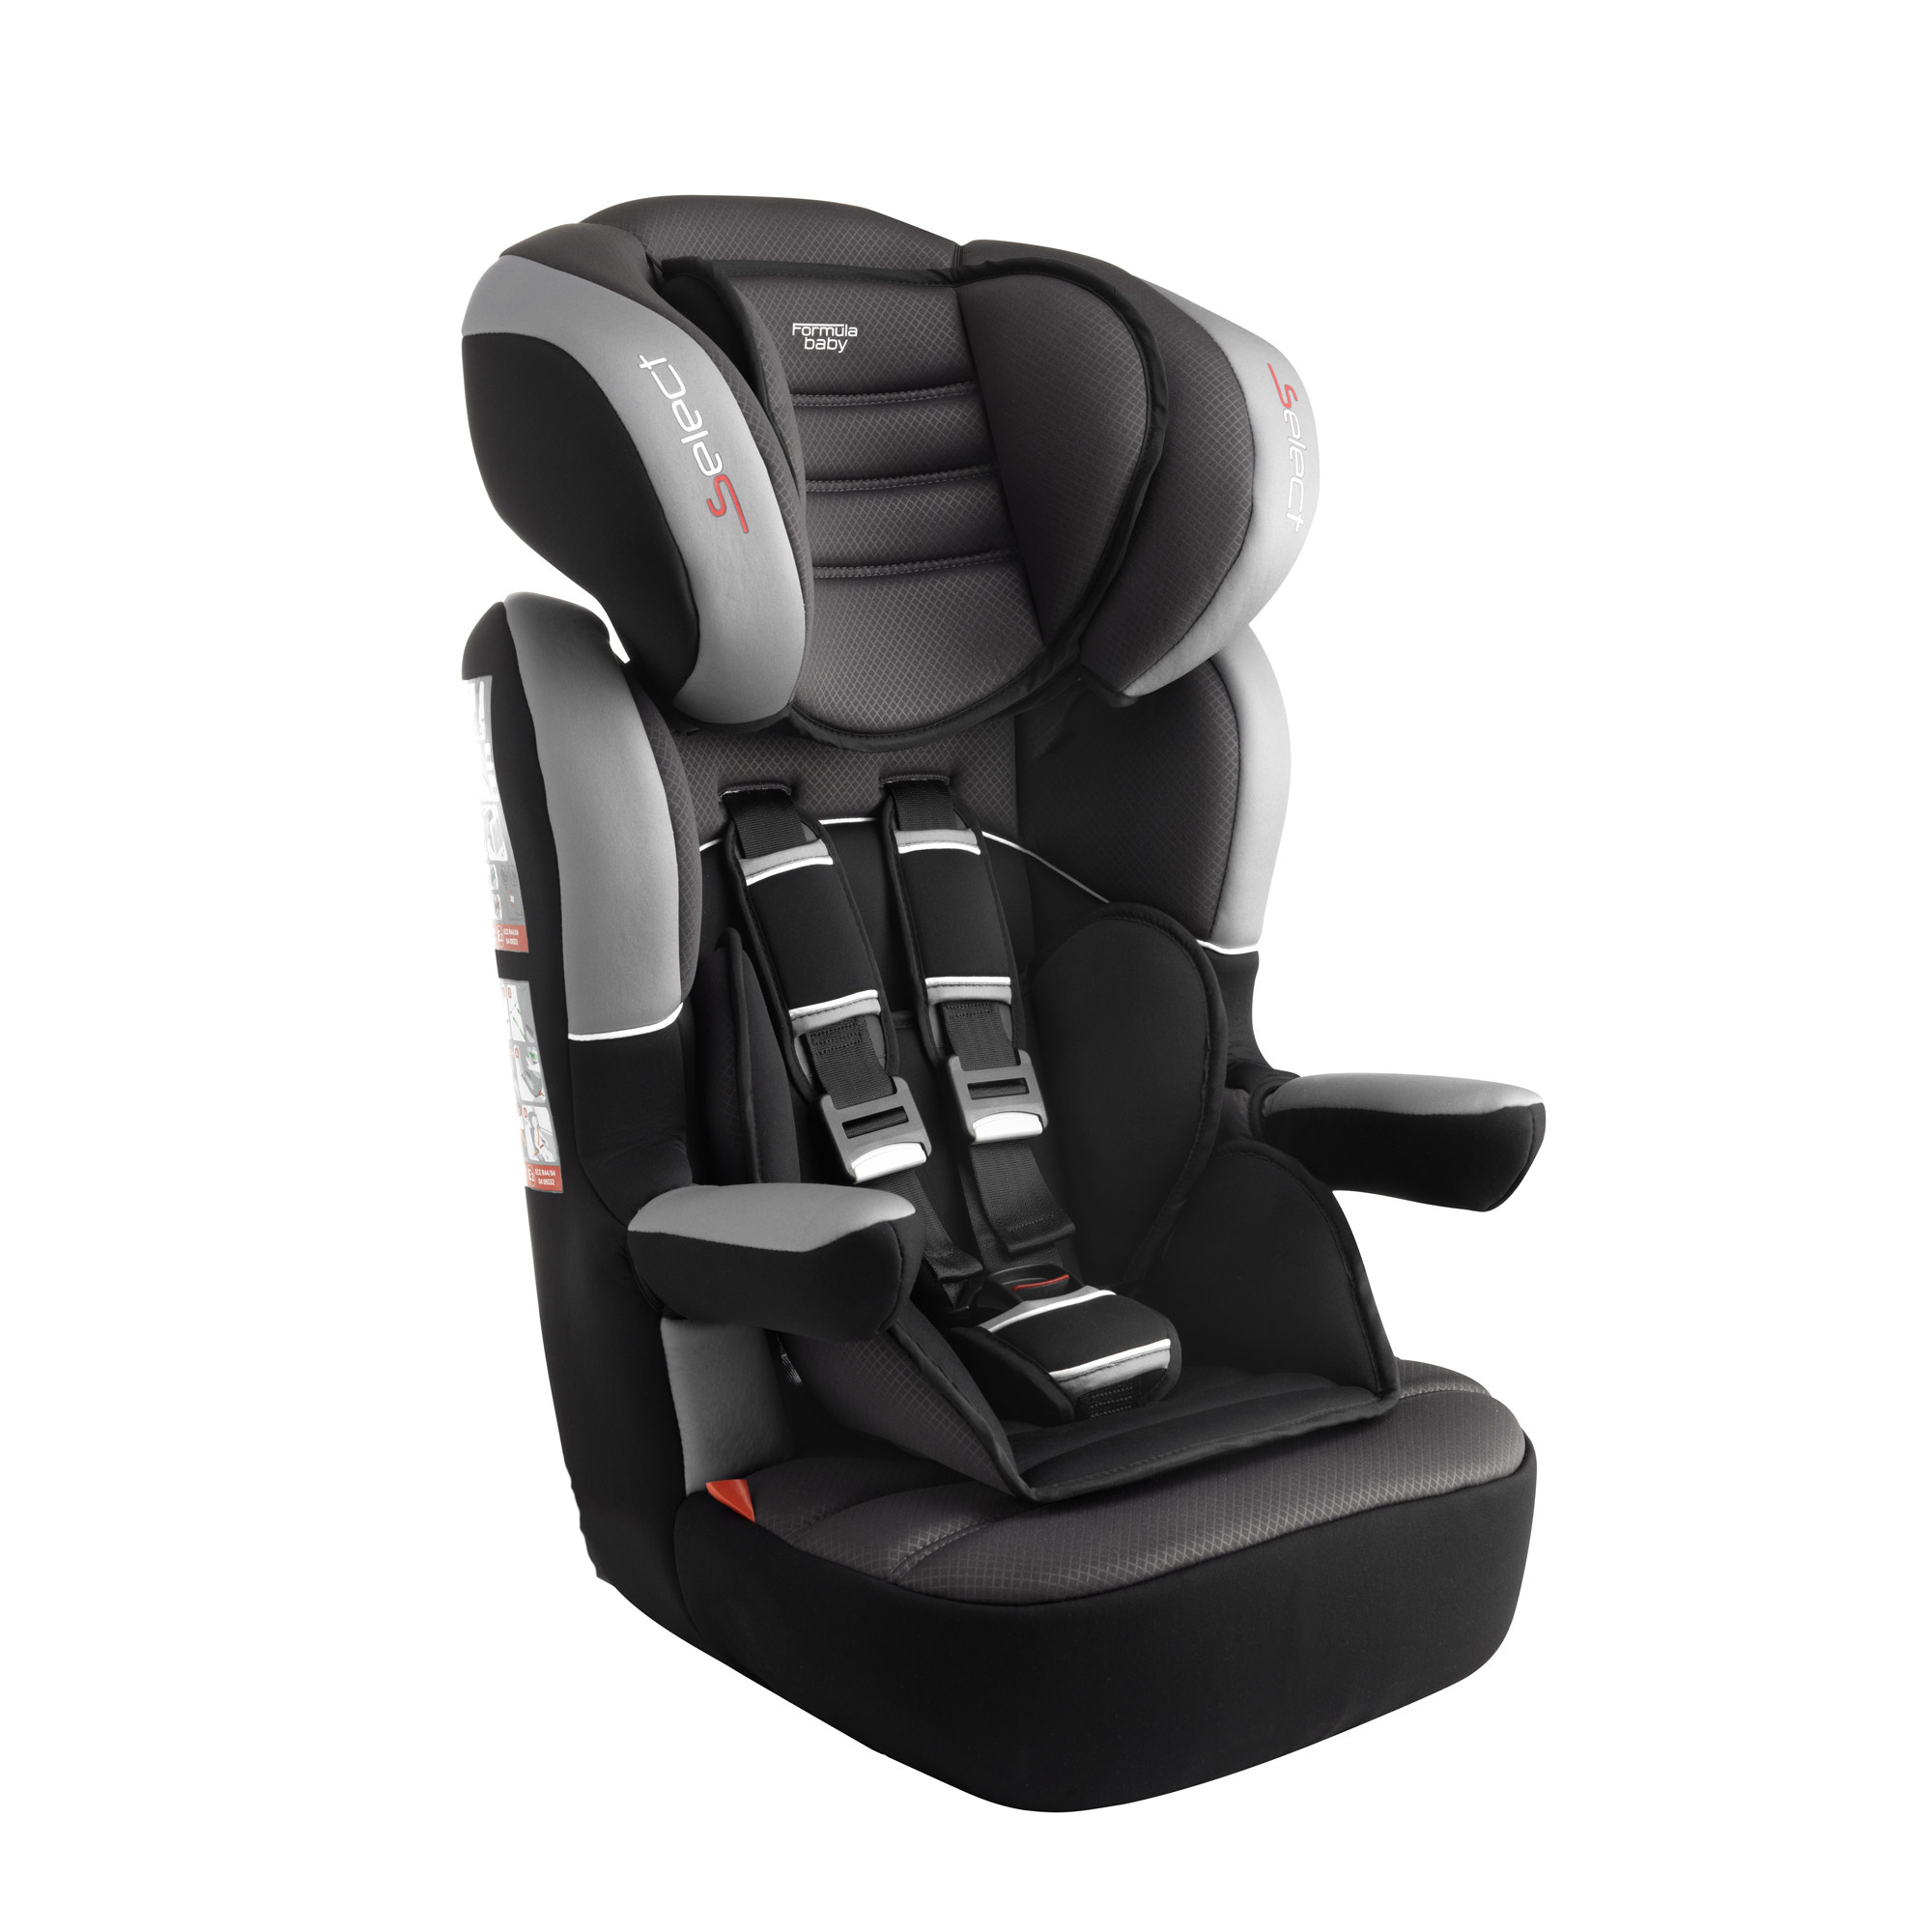 Groupe 1 2 3 select black de formula baby si ge auto - Siege auto inclinable groupe 1 2 3 ...